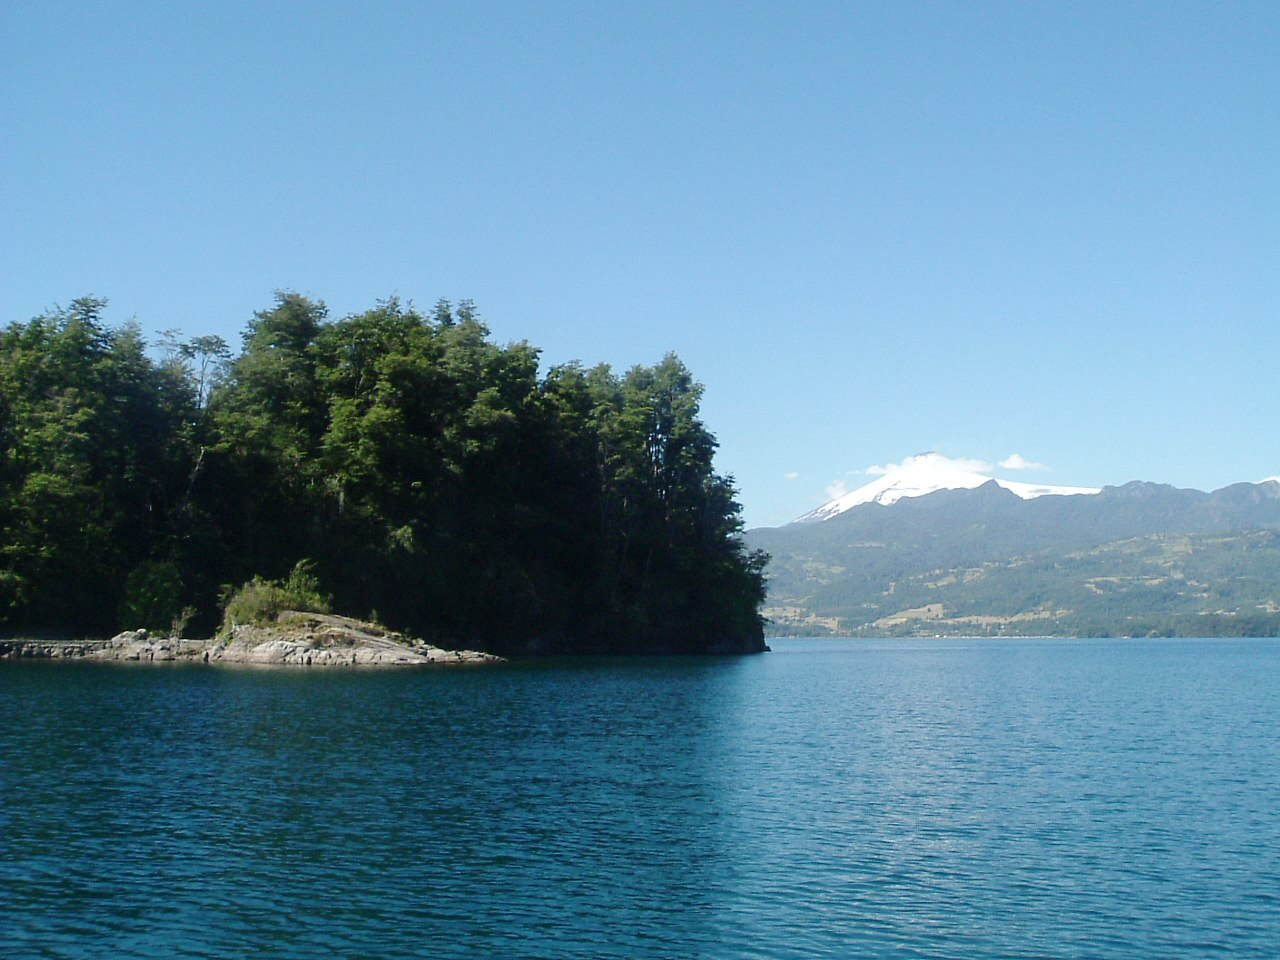 Private Islands For Sale Isla Paraiso Chile South